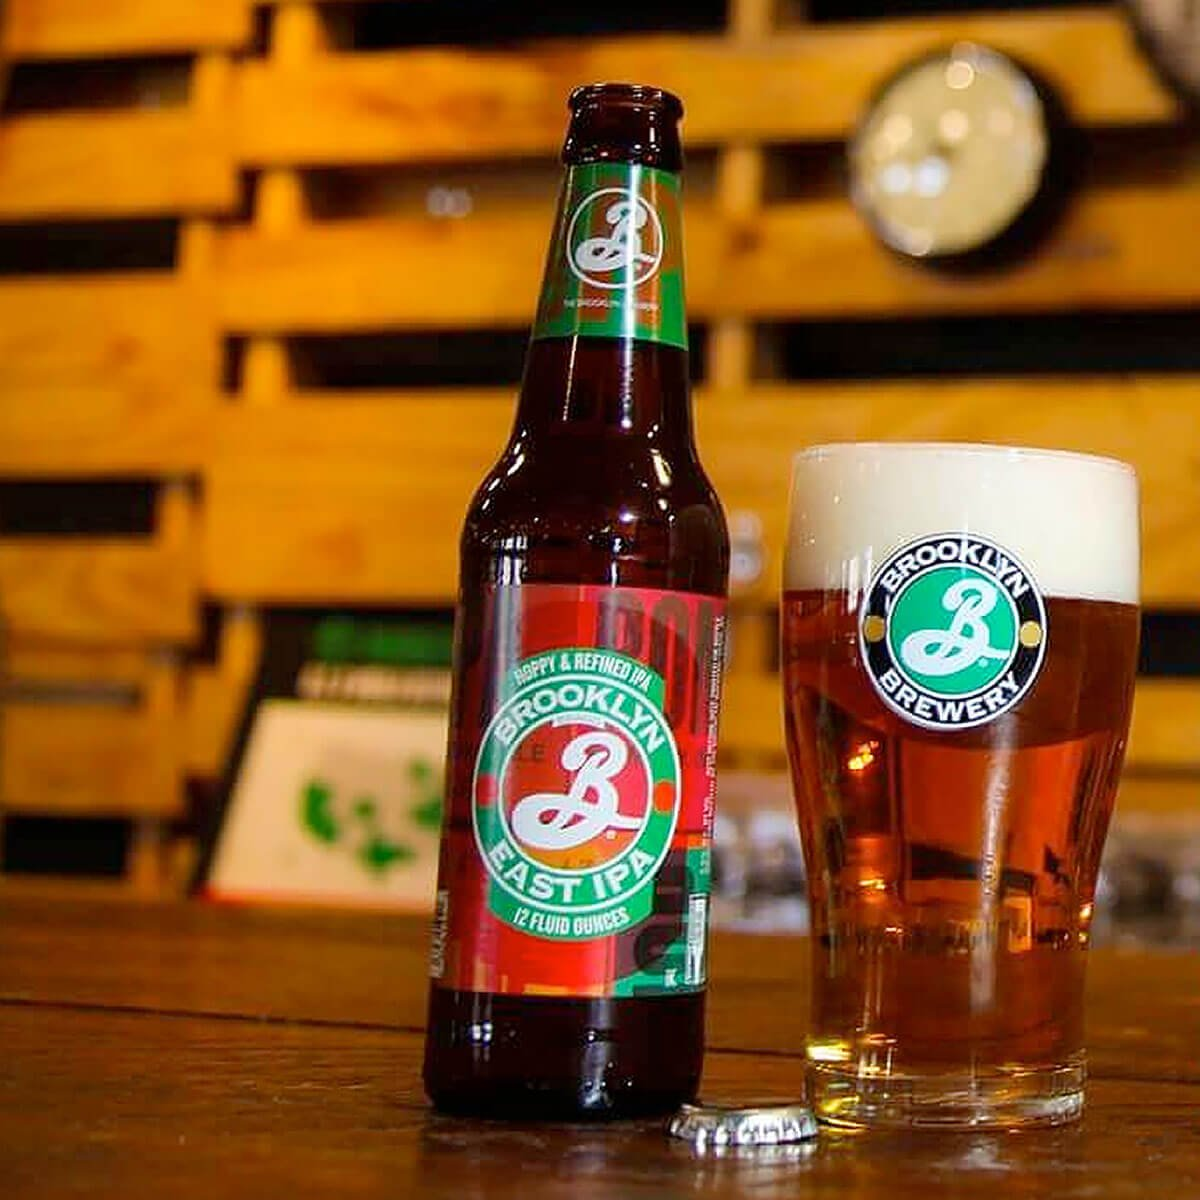 Brooklyn East IPA is an English-style IPA by Brooklyn Brewery that balances biscuit, caramel, and nut with floral and peppery hops.